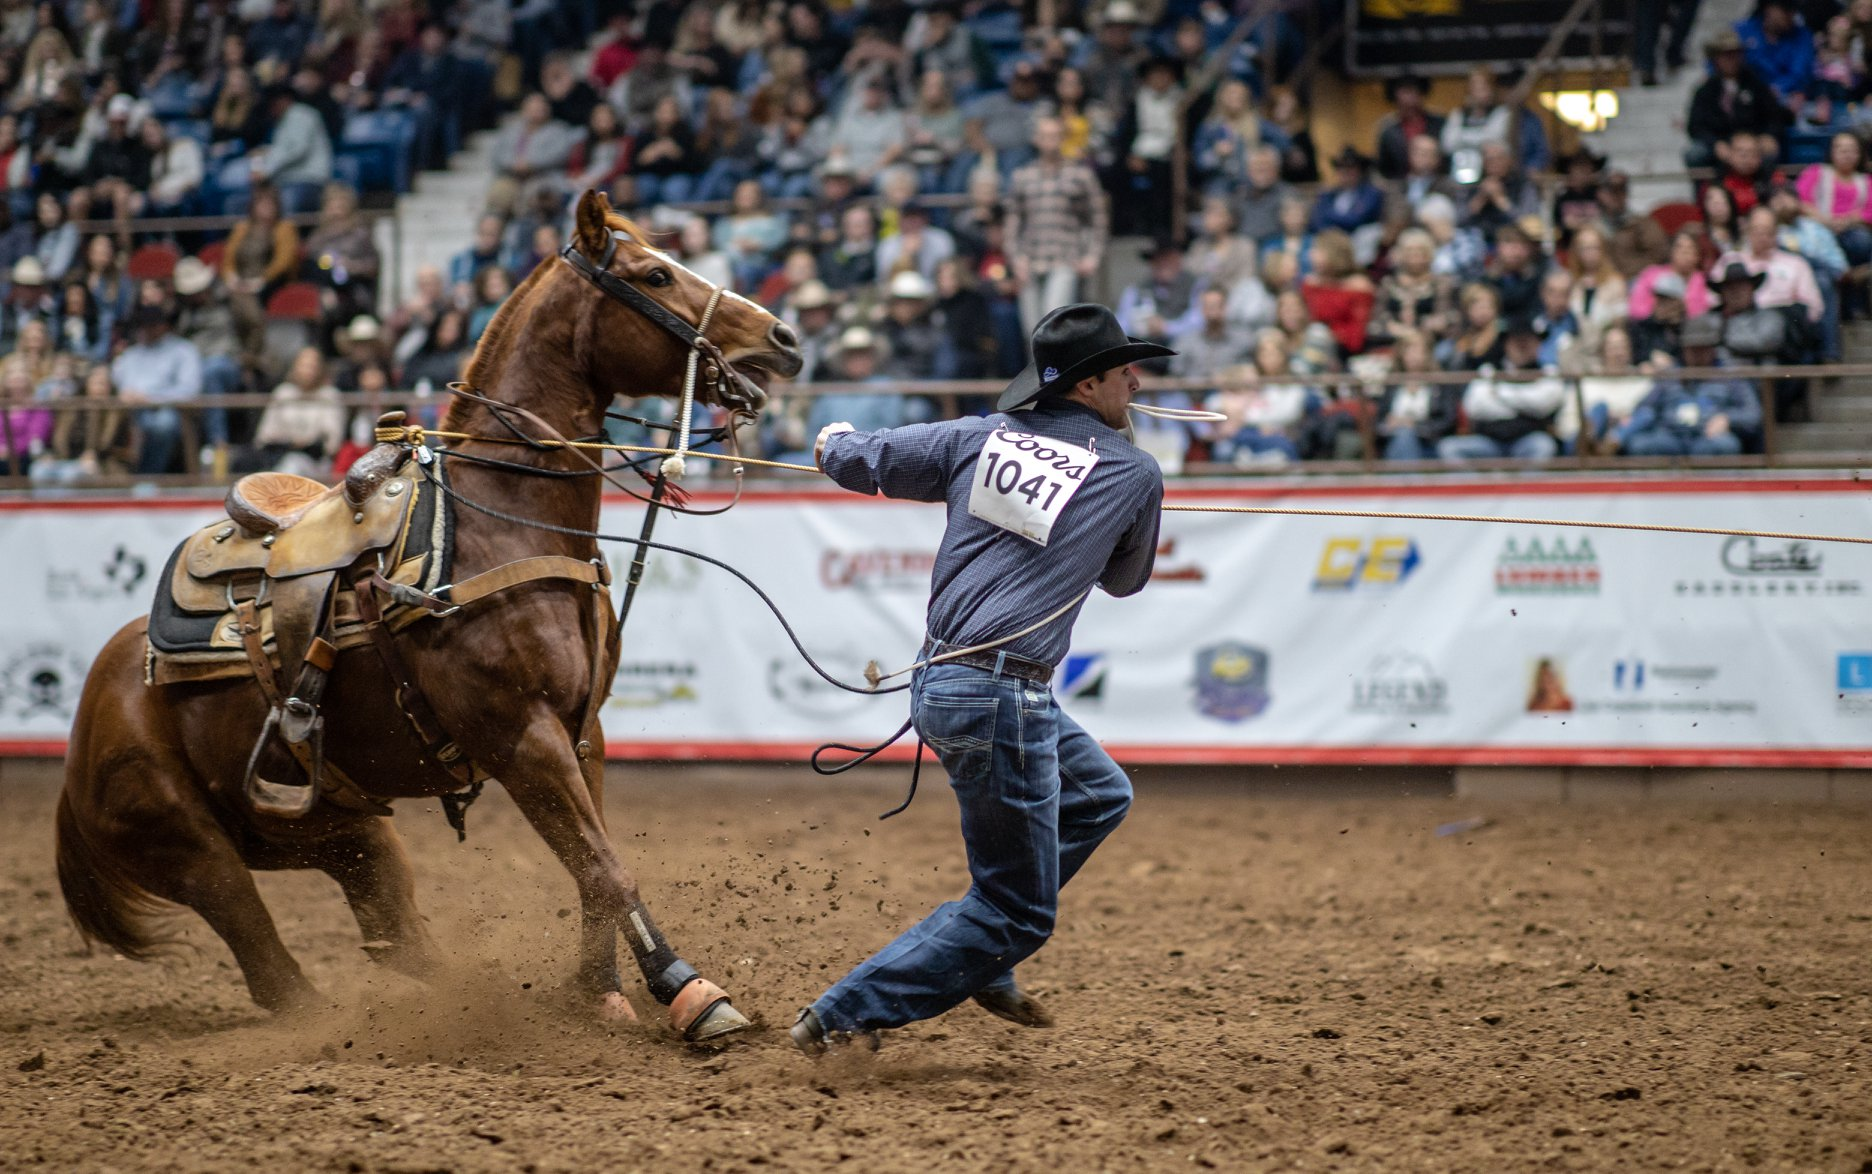 Bryson Seacrest at the Short Go of the 2020 San Angelo Rodeo on Feb. 14, 2020. (LIVE! Photo/Shawn Morrow)